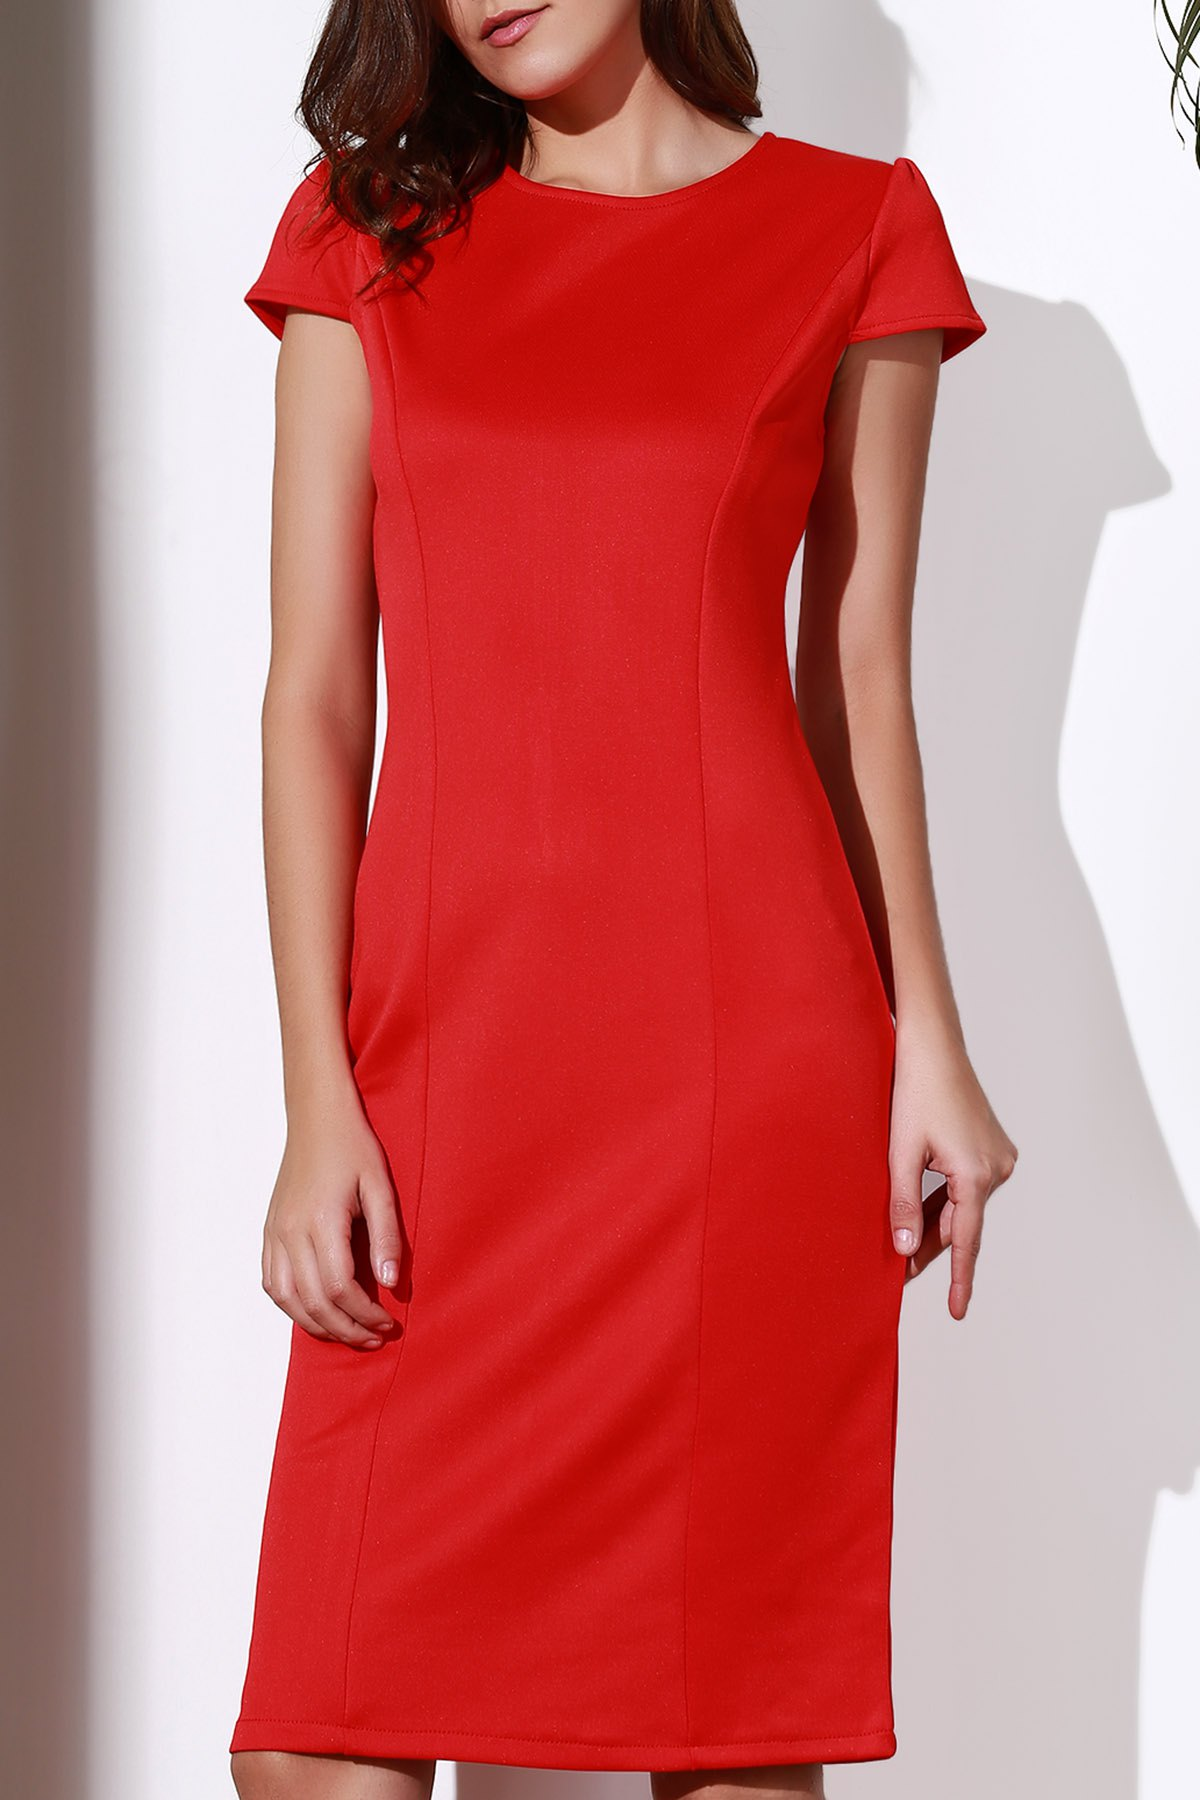 Round Neck Sleeveless Red Pencil Dress